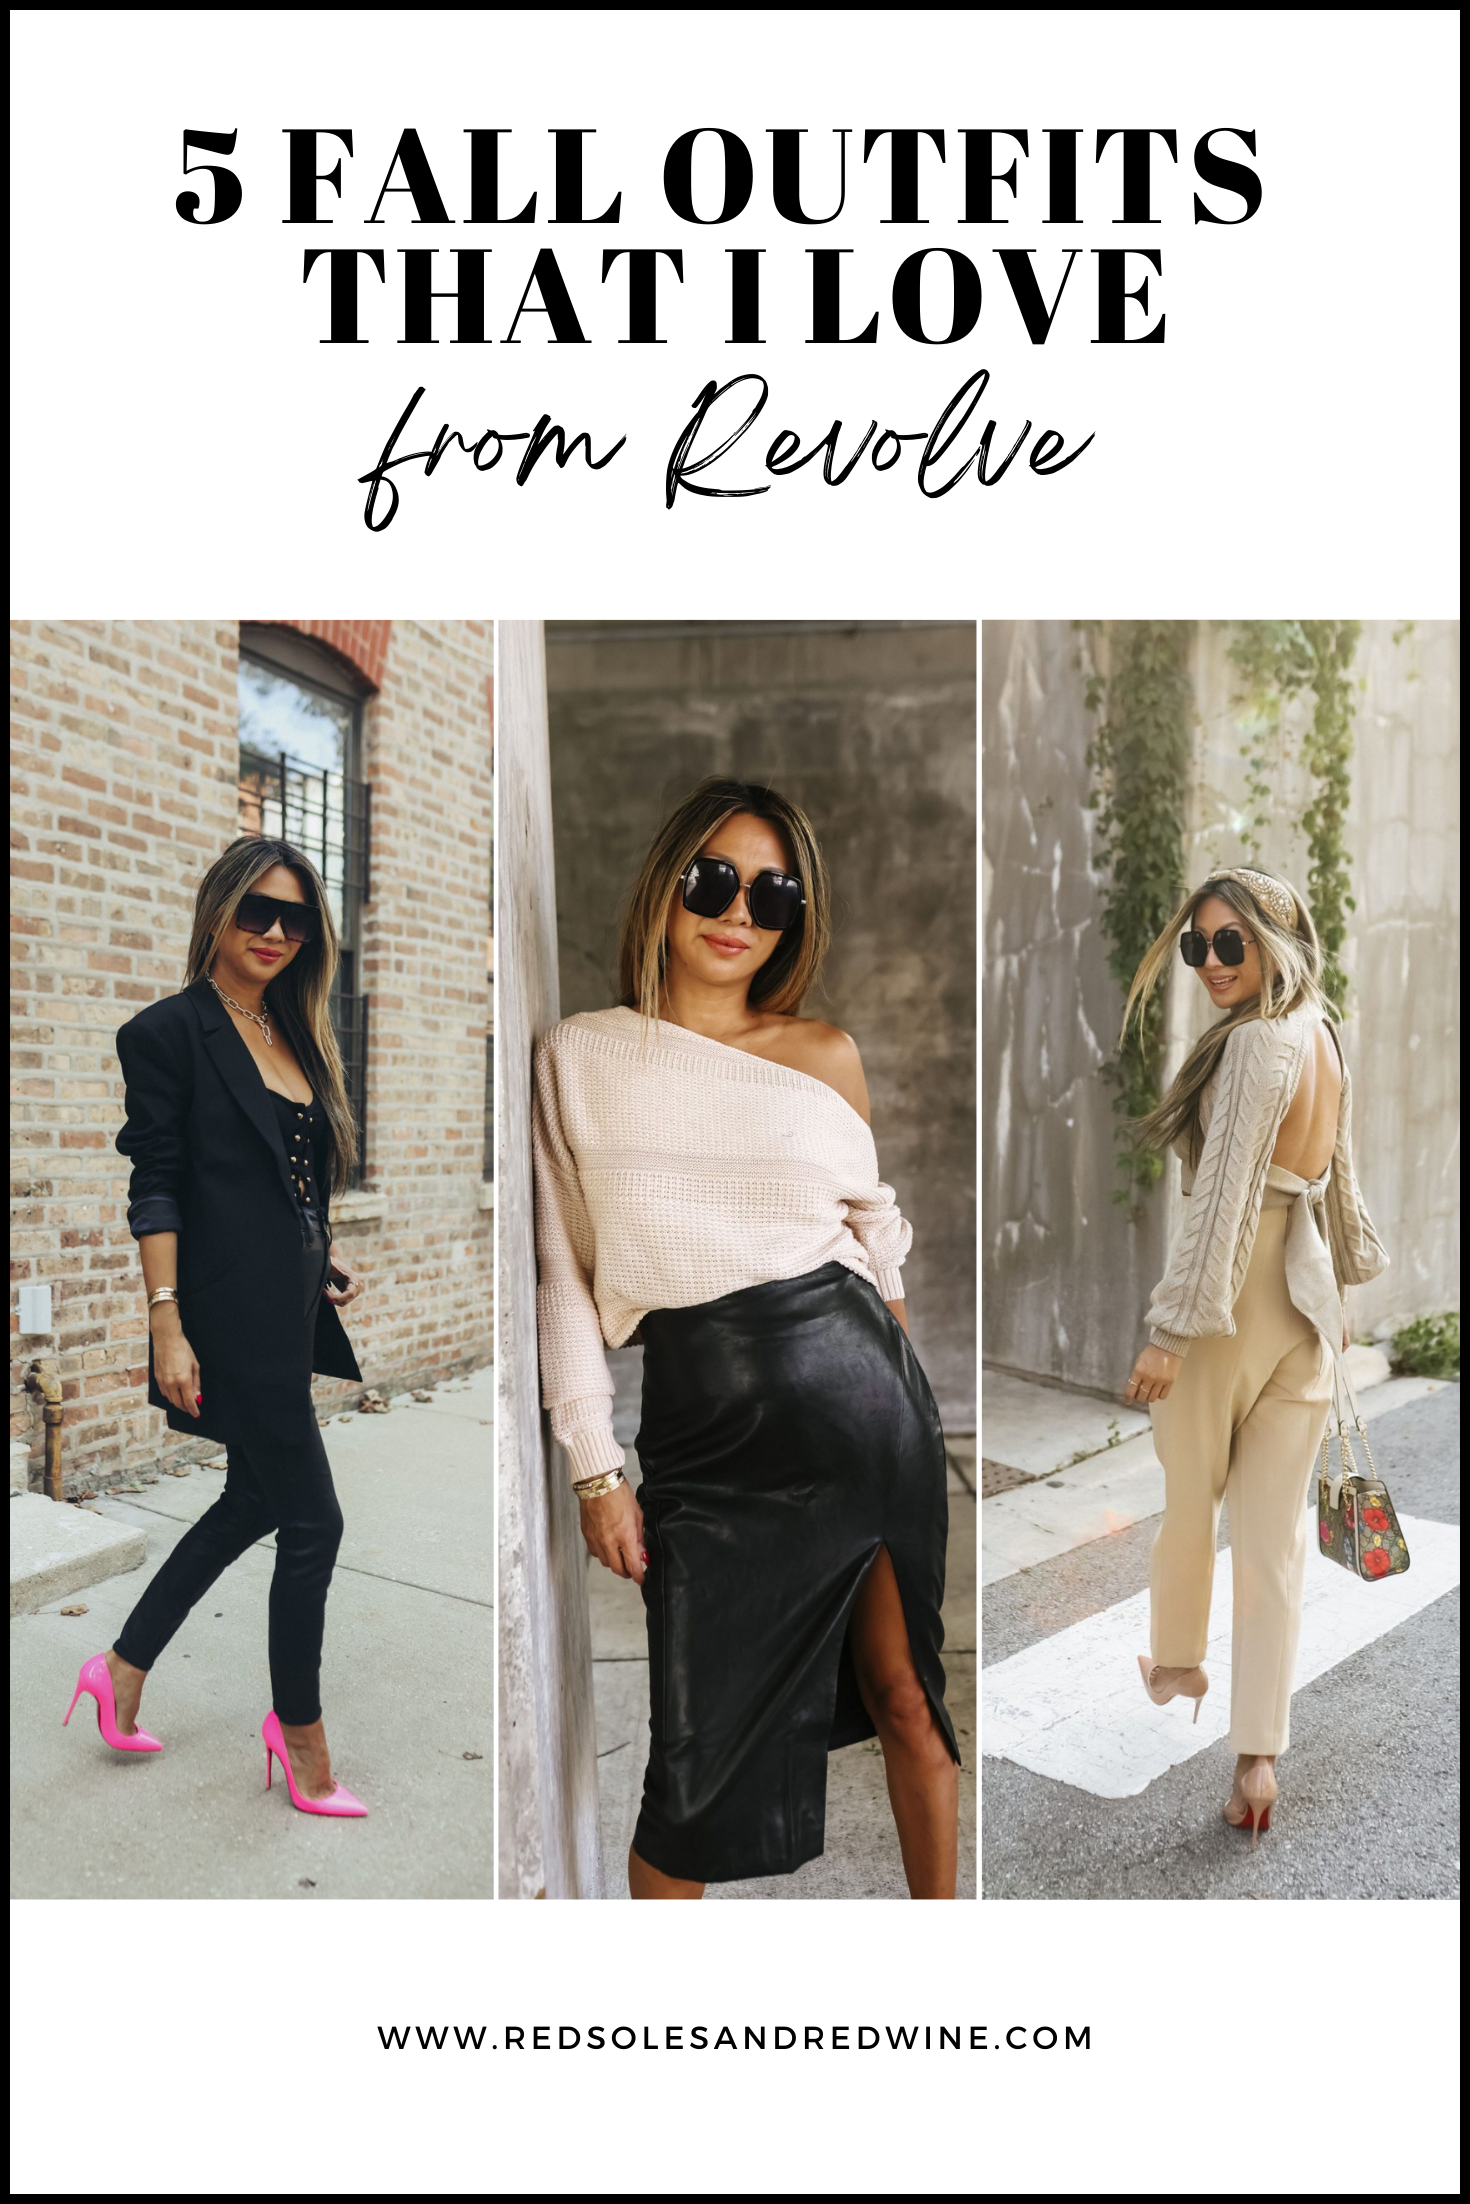 Revolve fall outfits, fall outfit ideas, fall outfit inspiration, fall style, fall street style, style photography, fashion photography ideas, street style photo ideas, street style inspiration, Red Soles and Red Wine, Jennifer Worman